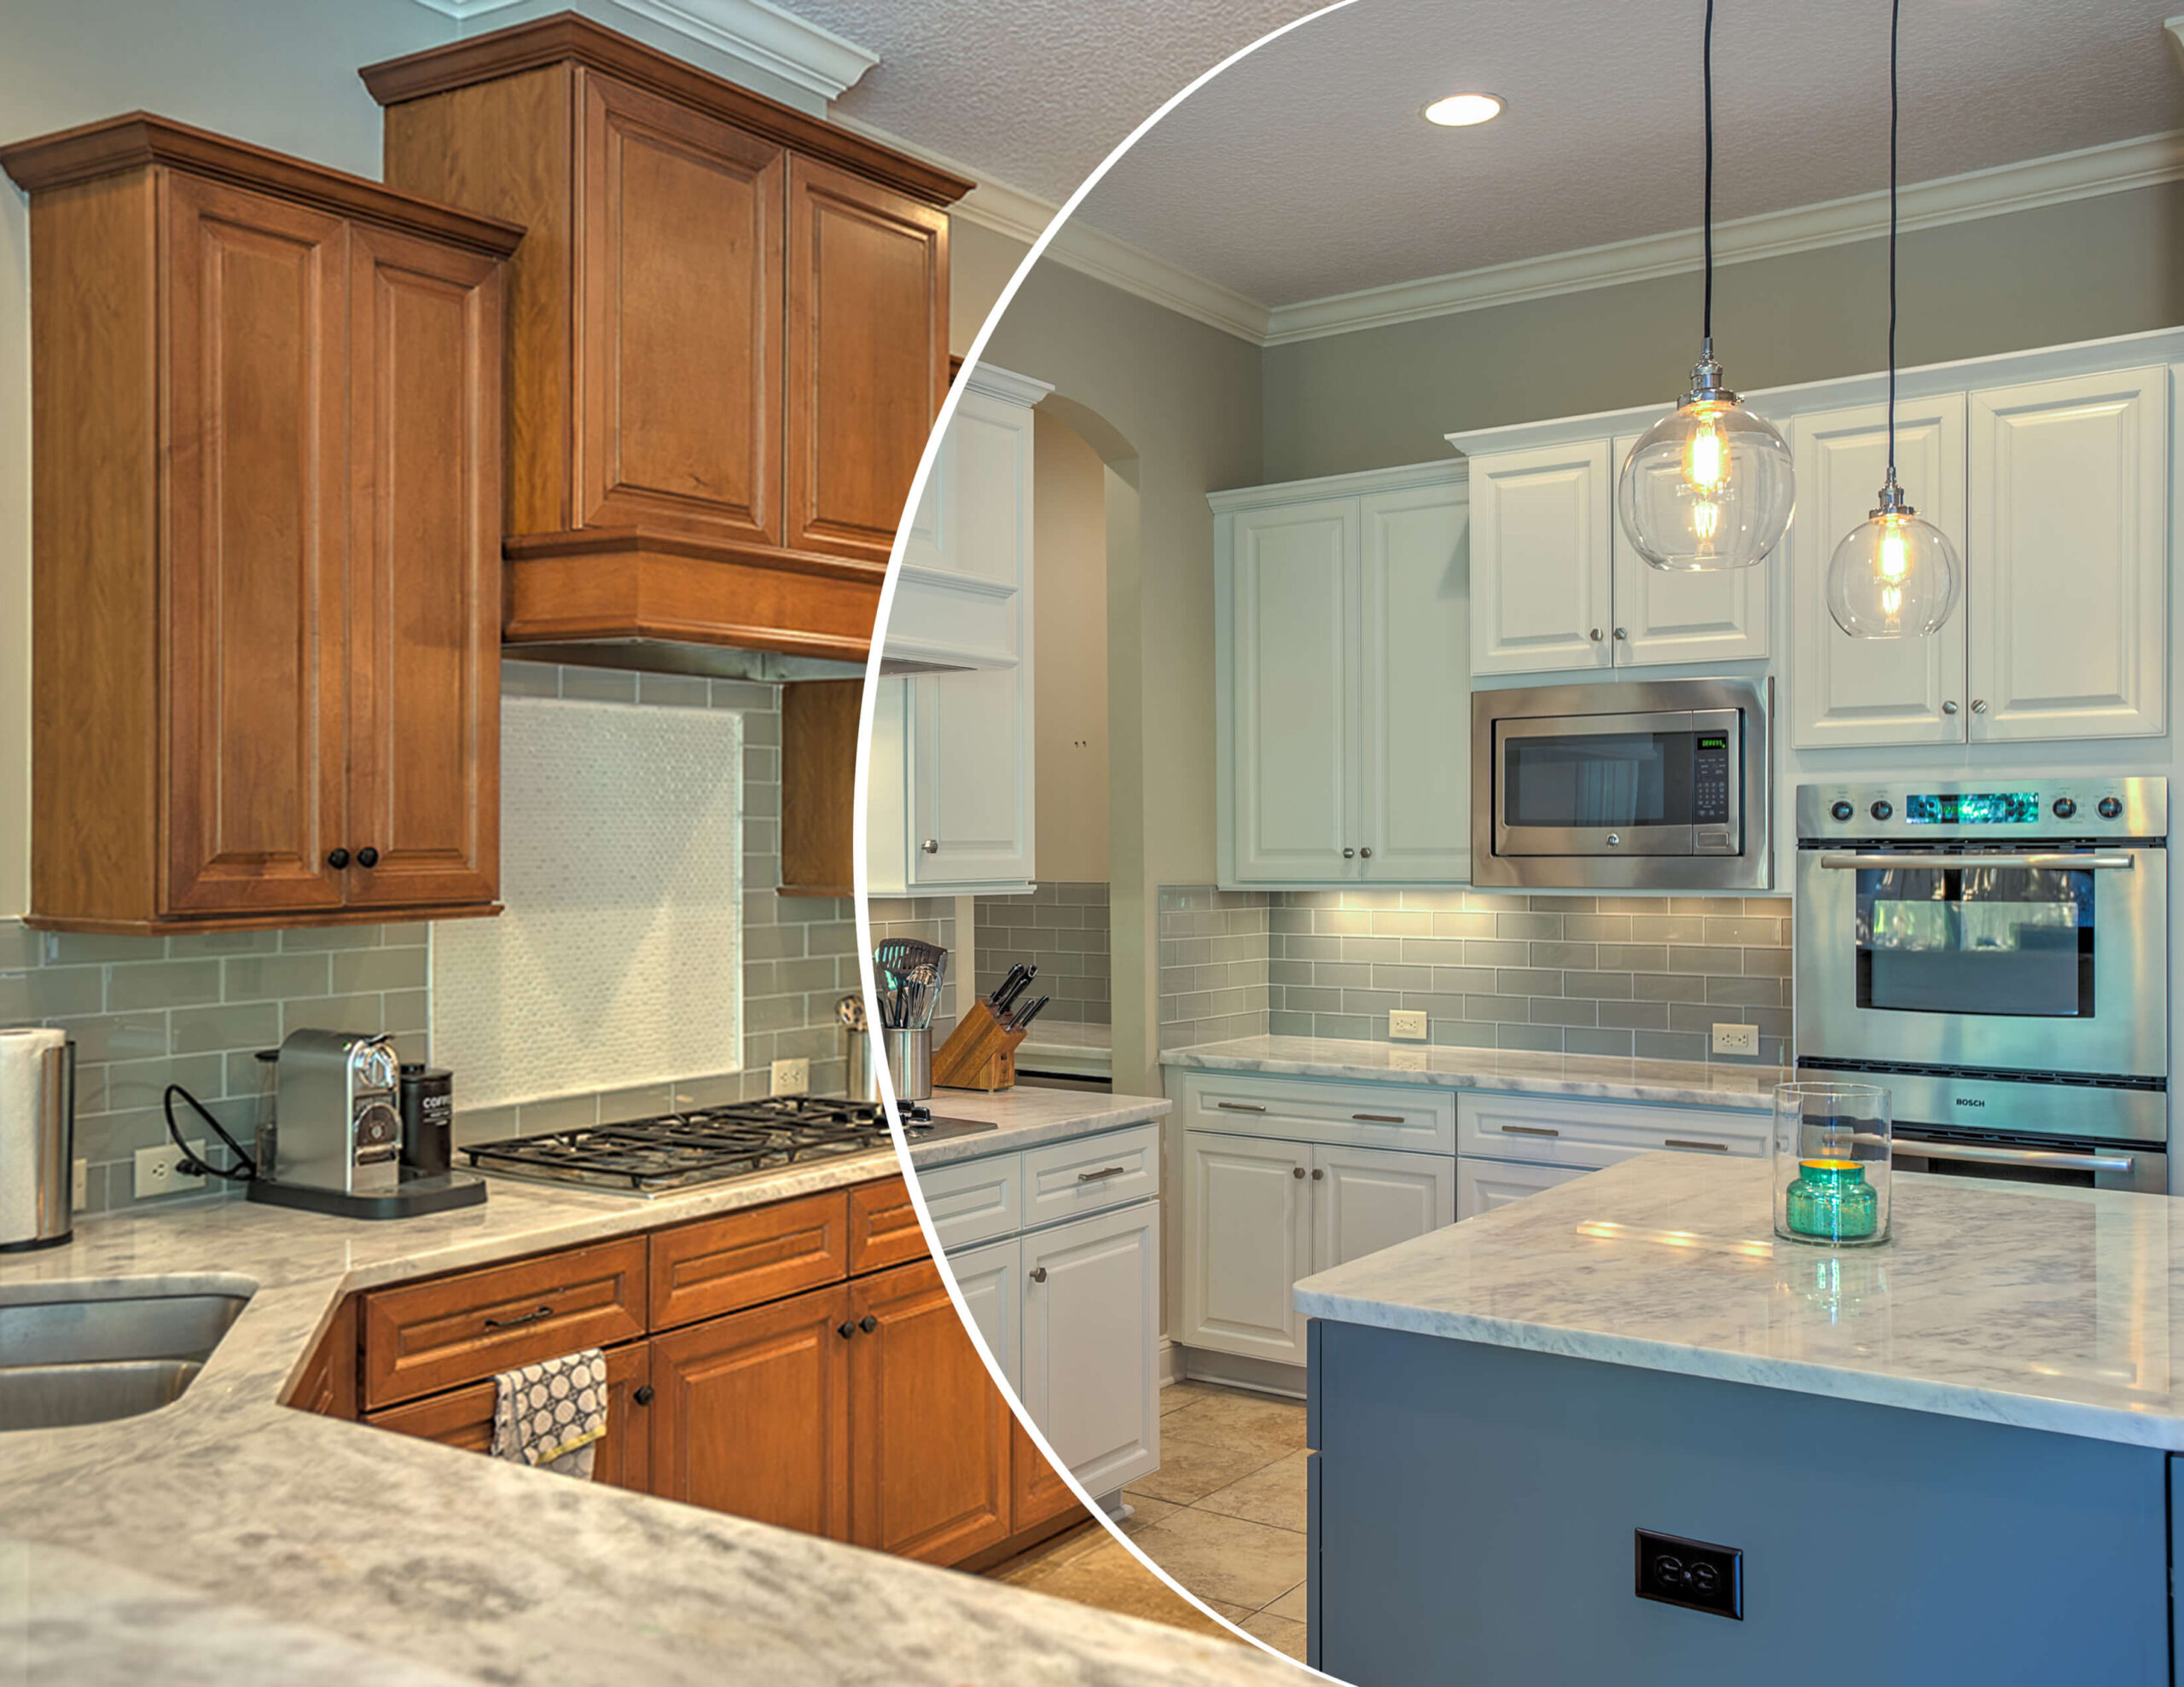 Top-Benefits-of-Cabinet-Refacing-to-Consider-for-Your-Kitchen-Remodel